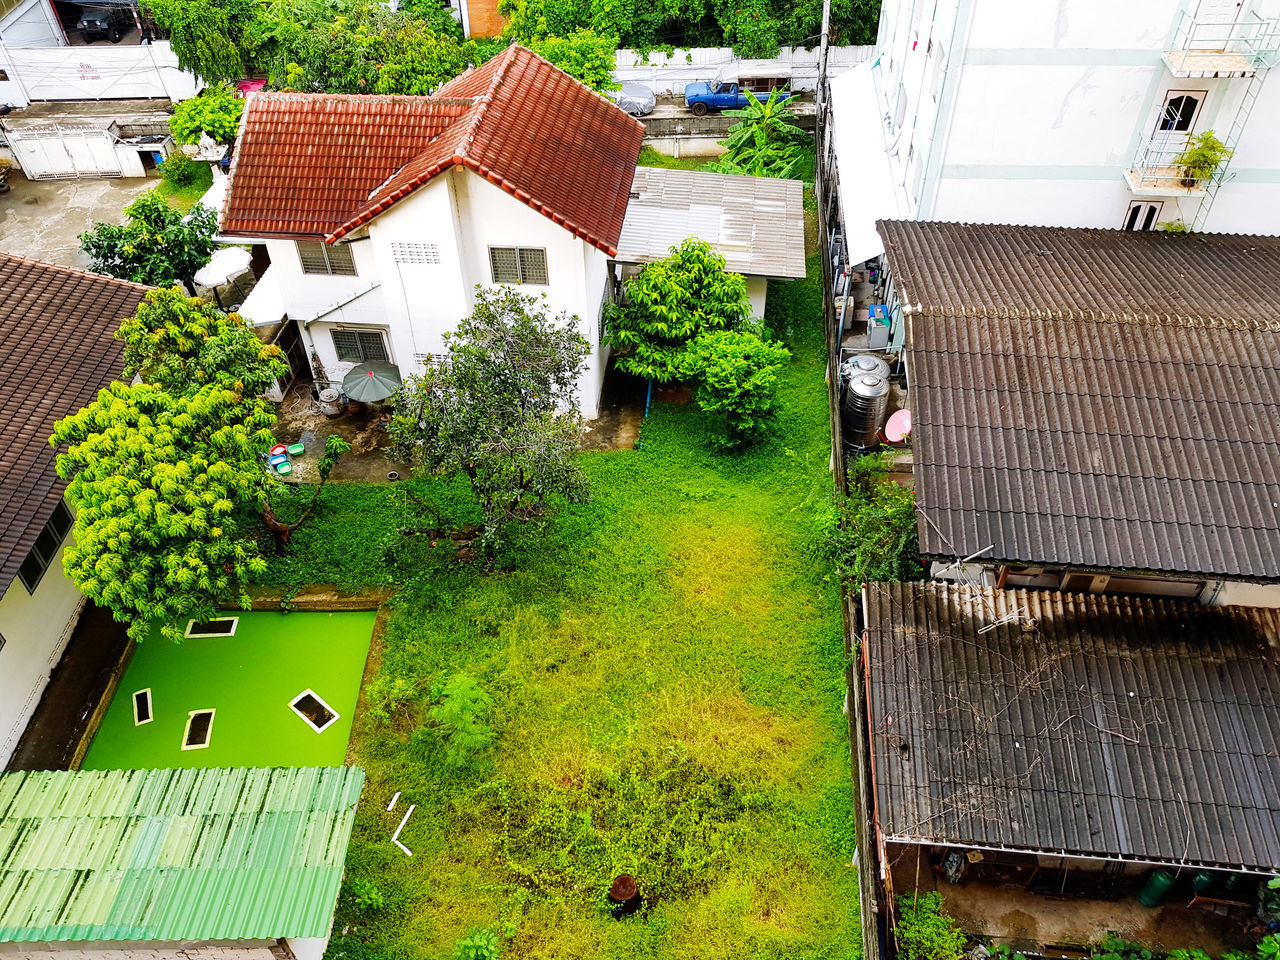 HIGH ANGLE VIEW OF POTTED PLANTS AND TREES OUTSIDE HOUSE